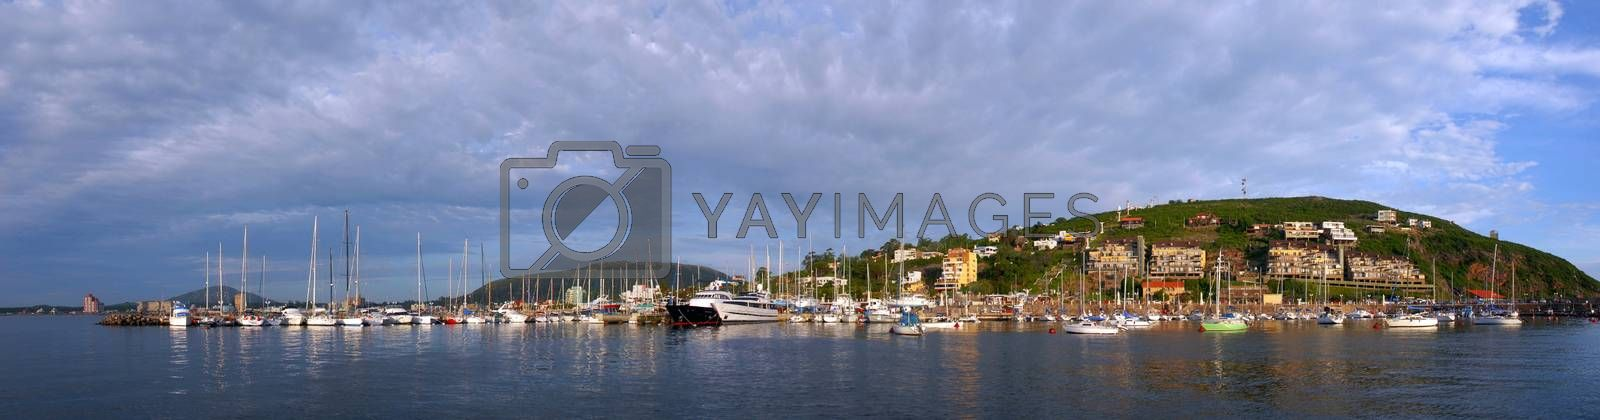 Summer coast panorama with boats in pier and cloudy skyline hill view of Piriapolis, Uruguay from the sea.